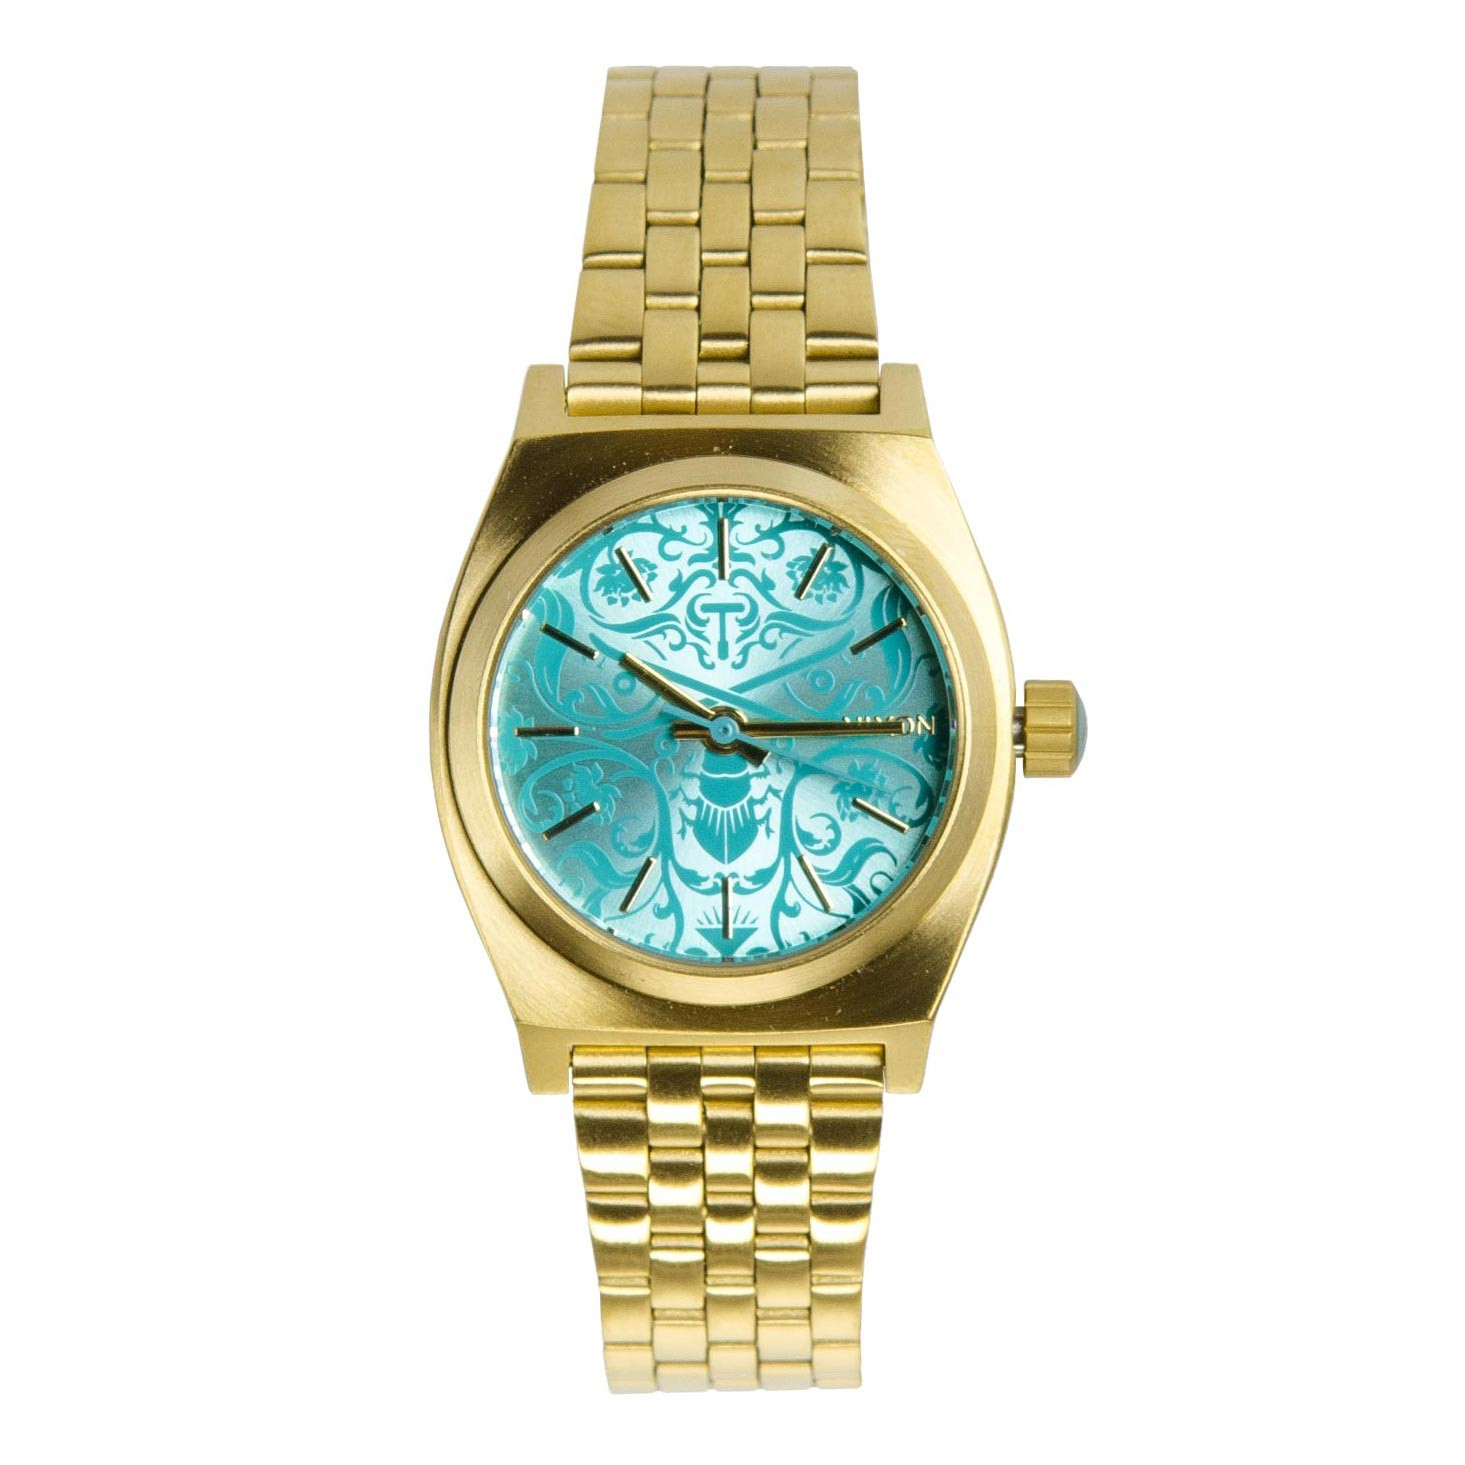 Hodinky Nixon Small Time Teller gold/blue/beetlepoint